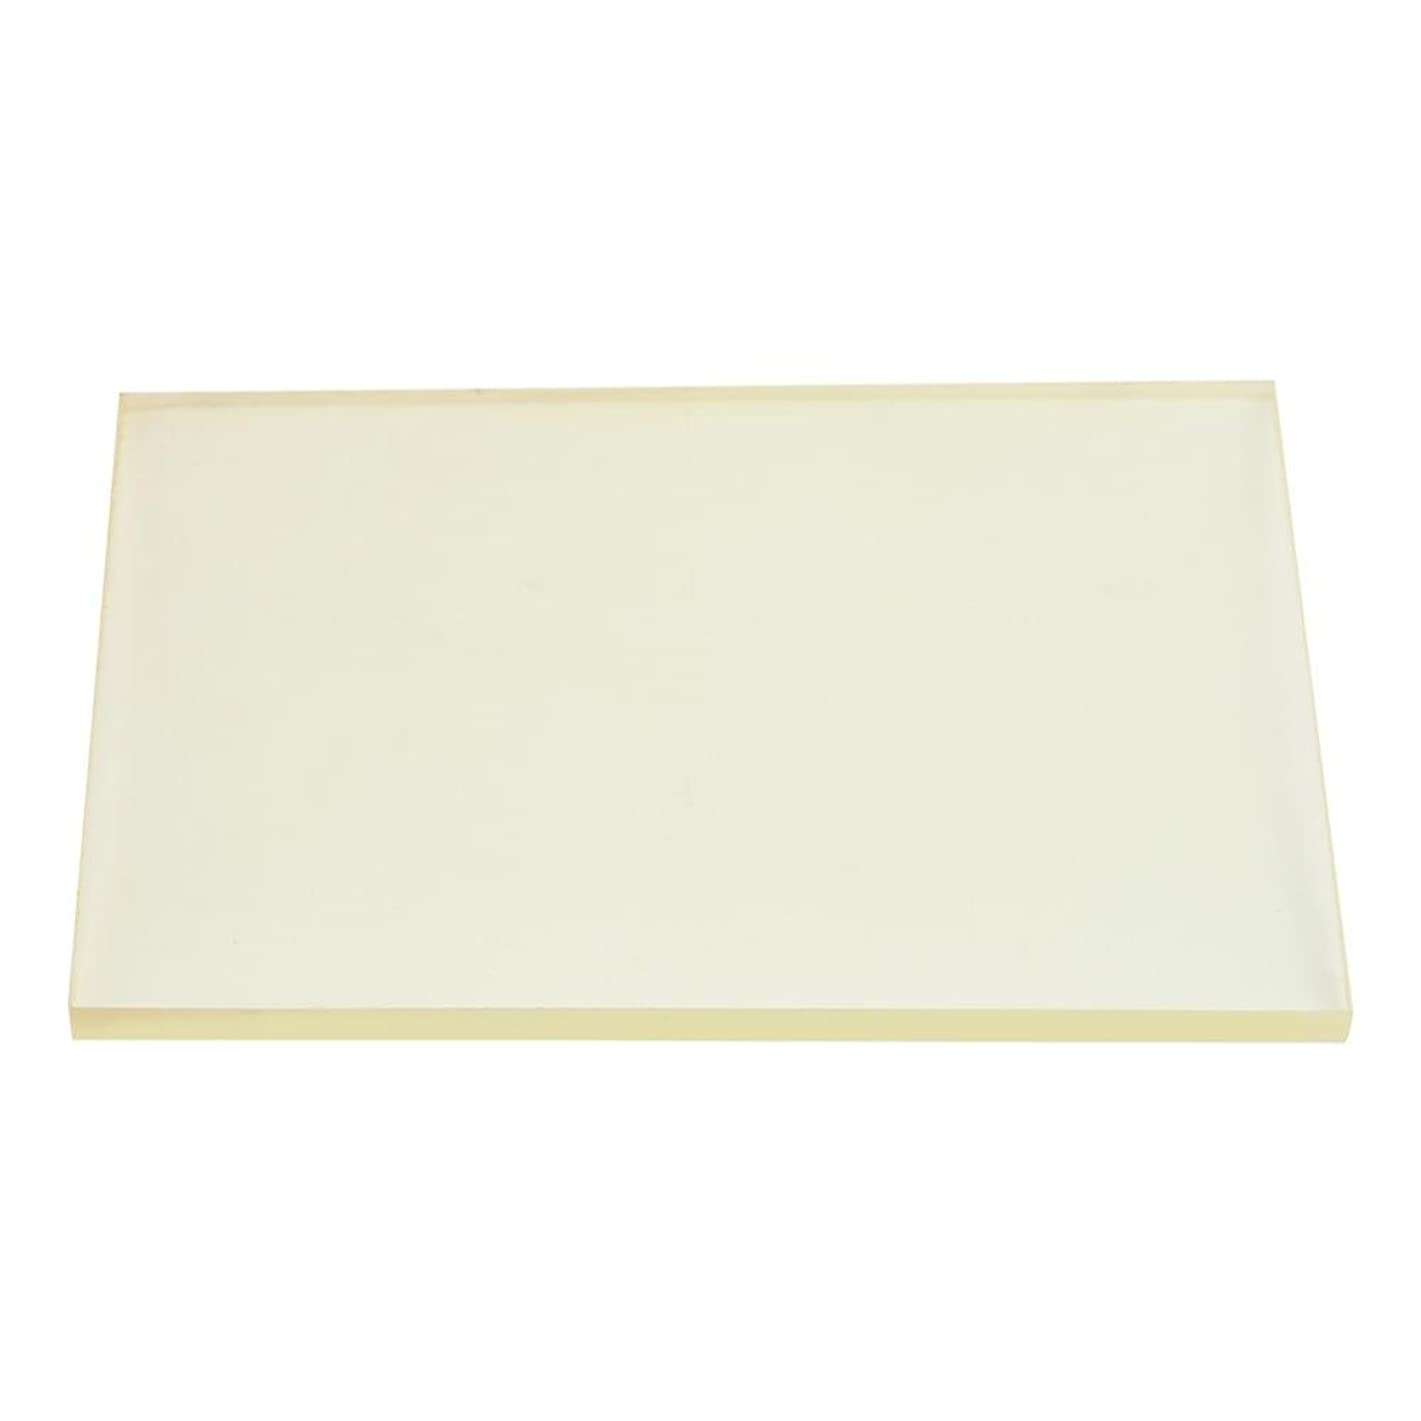 Leather Stamping Board Leather Craft Rubber Mute Board Cutting Hole Punching Mat 20x15x0.8cm/7.87x5.91x0.31in